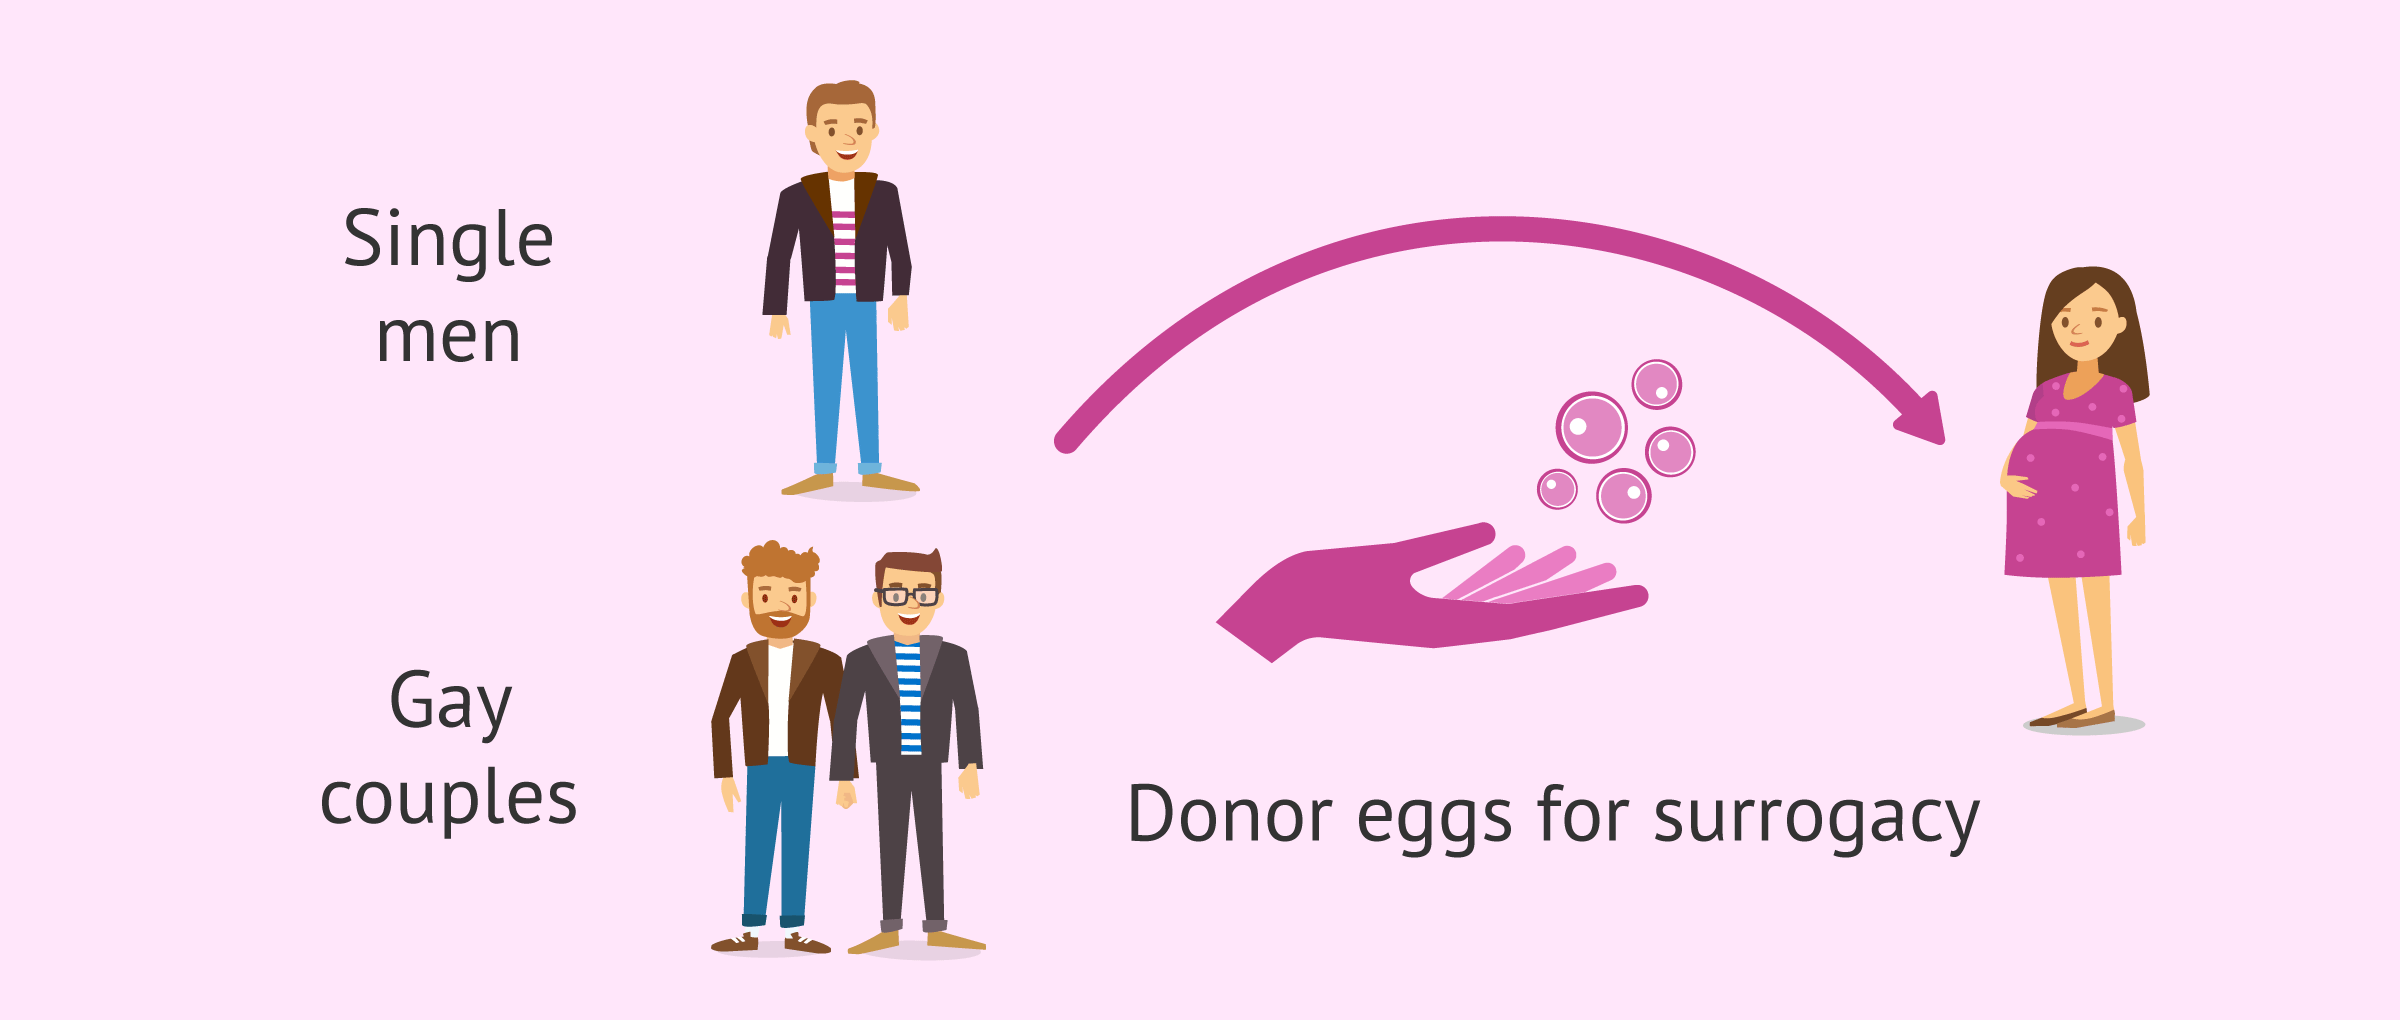 Egg donation for homosexual couples